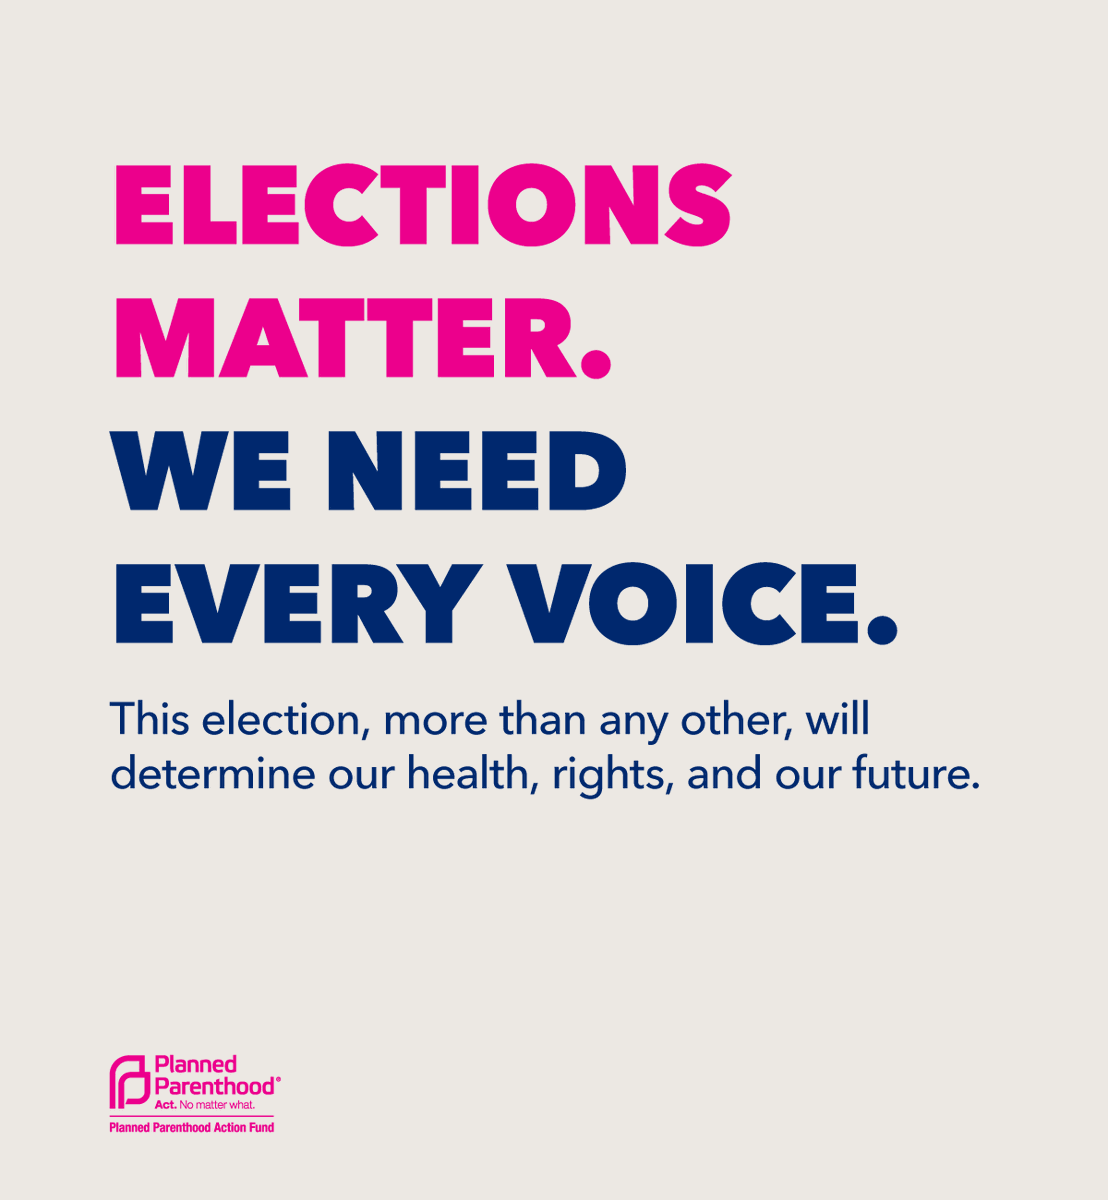 Voting shapes our lives and has lasting effects. This election, in particular, will determine our health, rights, & our future. It's up to us to decide. We need every voice. Make a plan to vote and be heard: Text PLAN to 22422 #WeNeedEveryVoice https://t.co/wN325AdqzQ